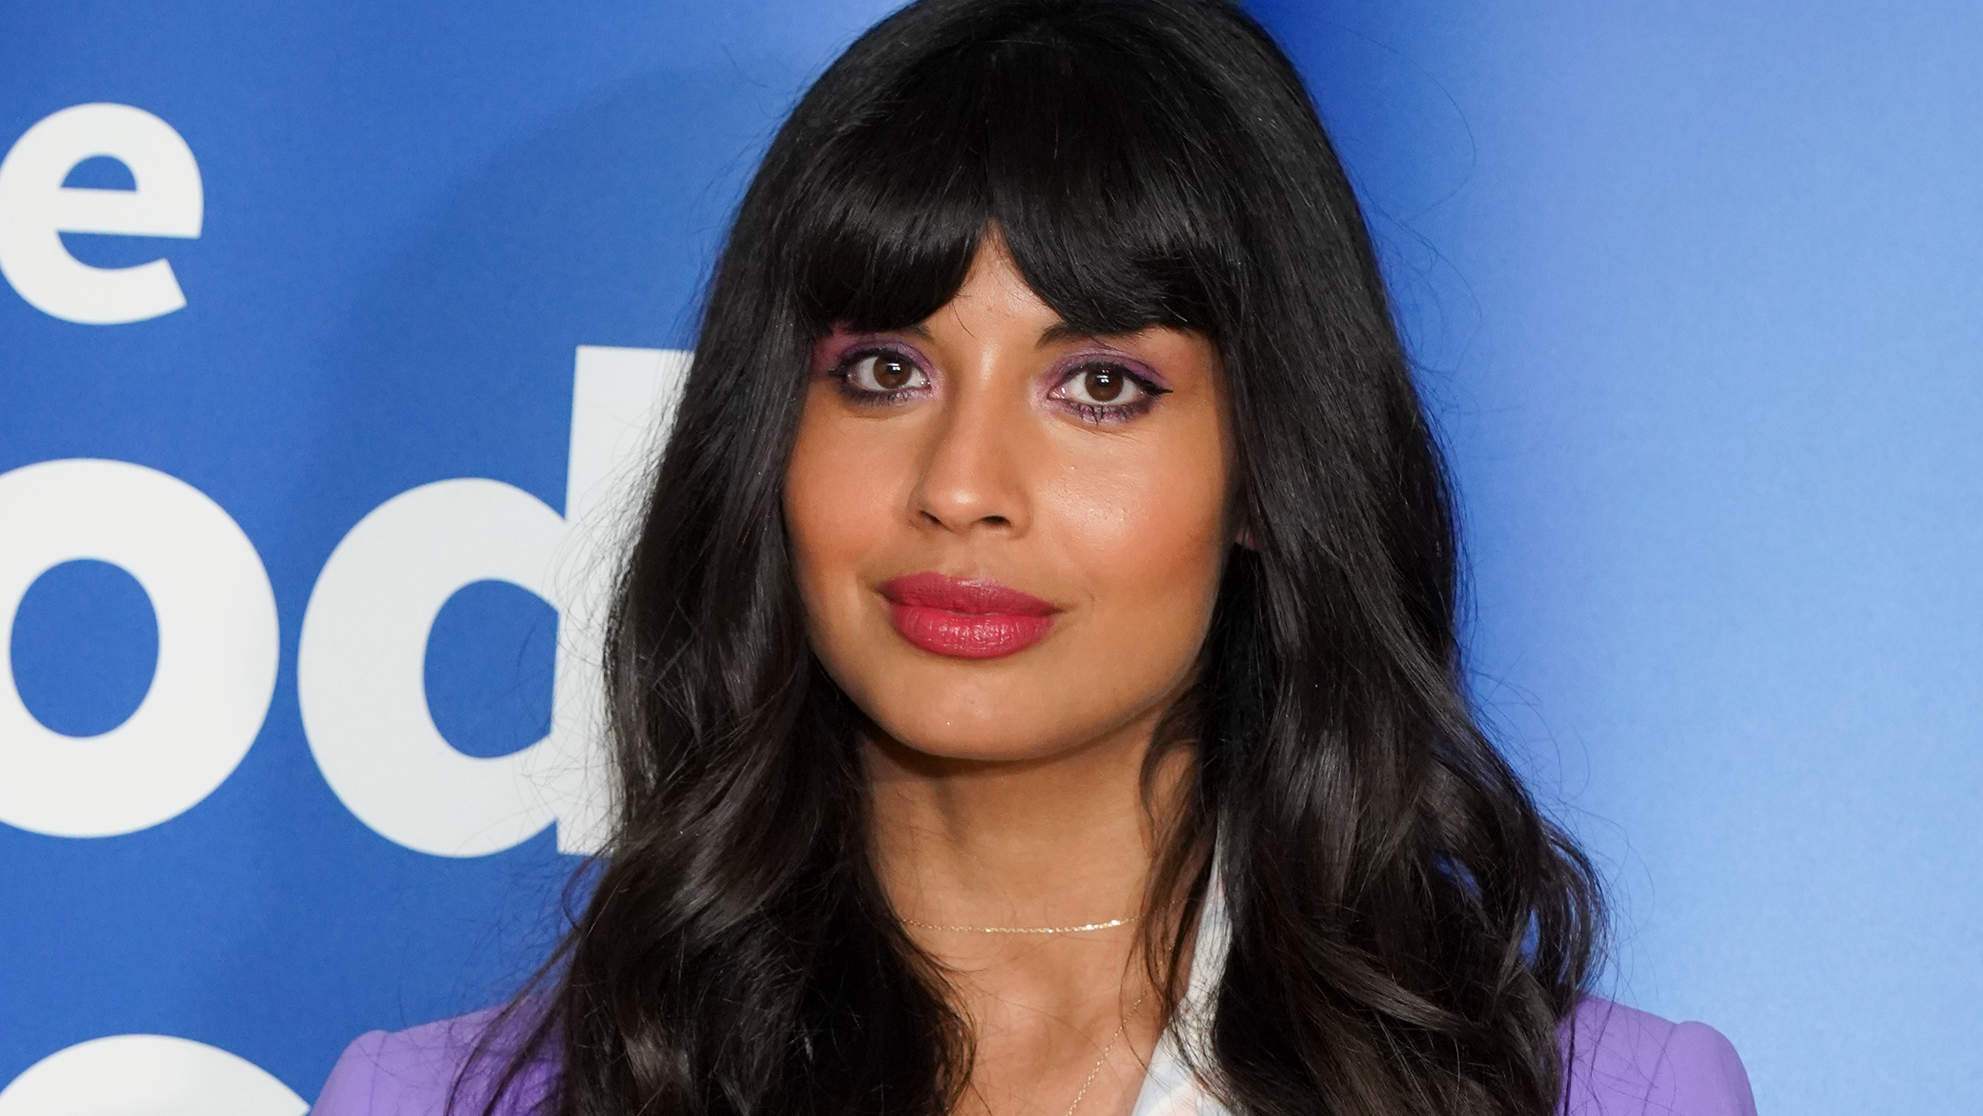 Jameela Jamil Is Taking a 'Hard Pass' on Kim Kardashian's Body Makeup Line